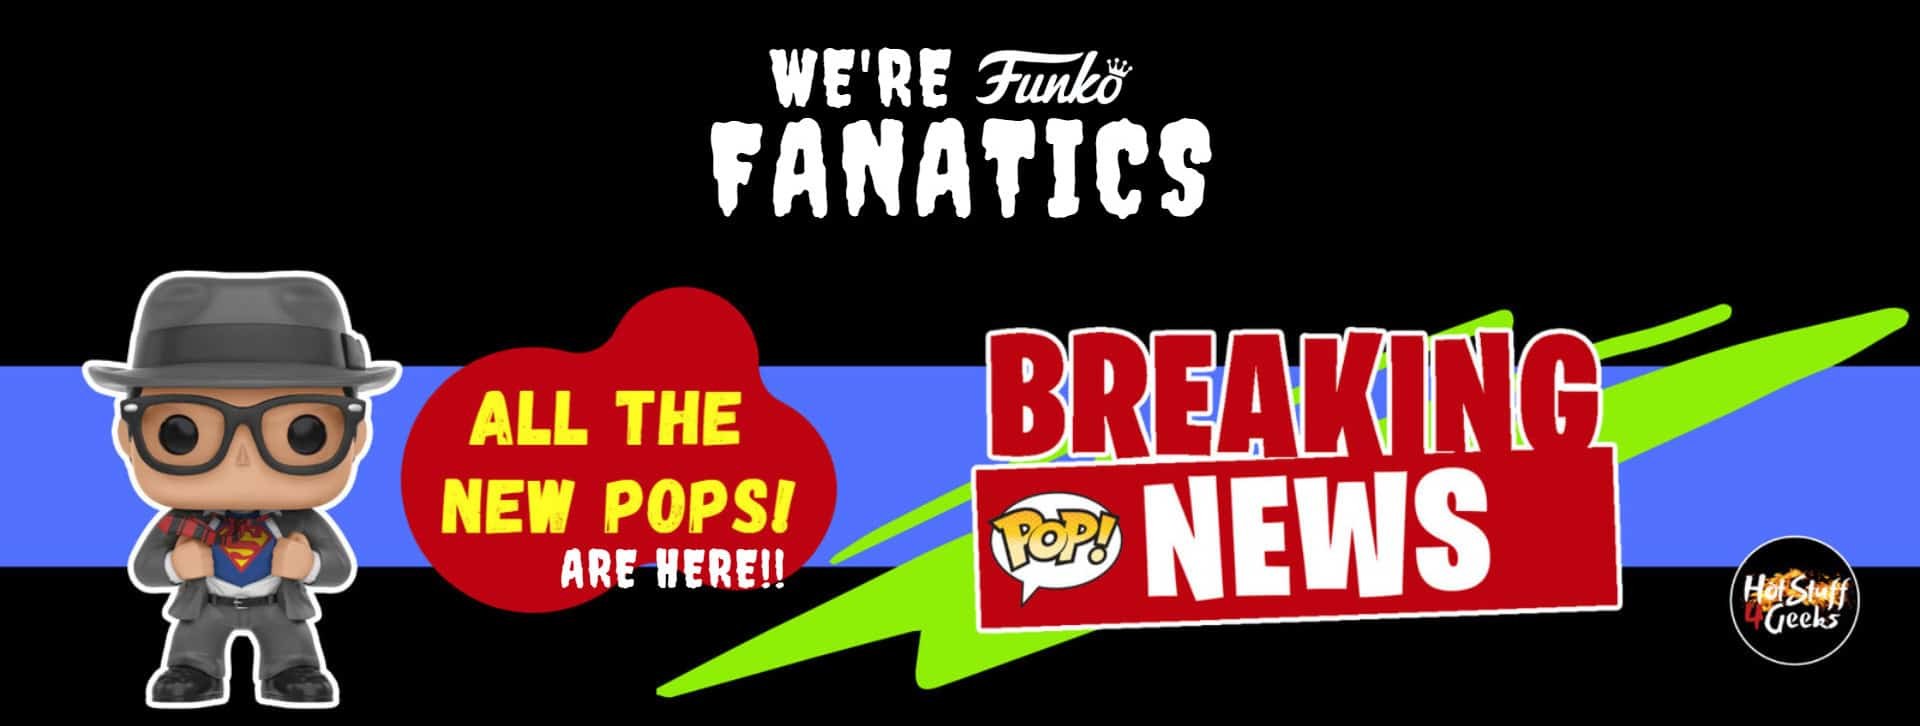 We're Funko Fanatics! We search the world for all Funko POPs to better serve the community. Find here the best Funko Pop! Vinyl Figures and shopping guides